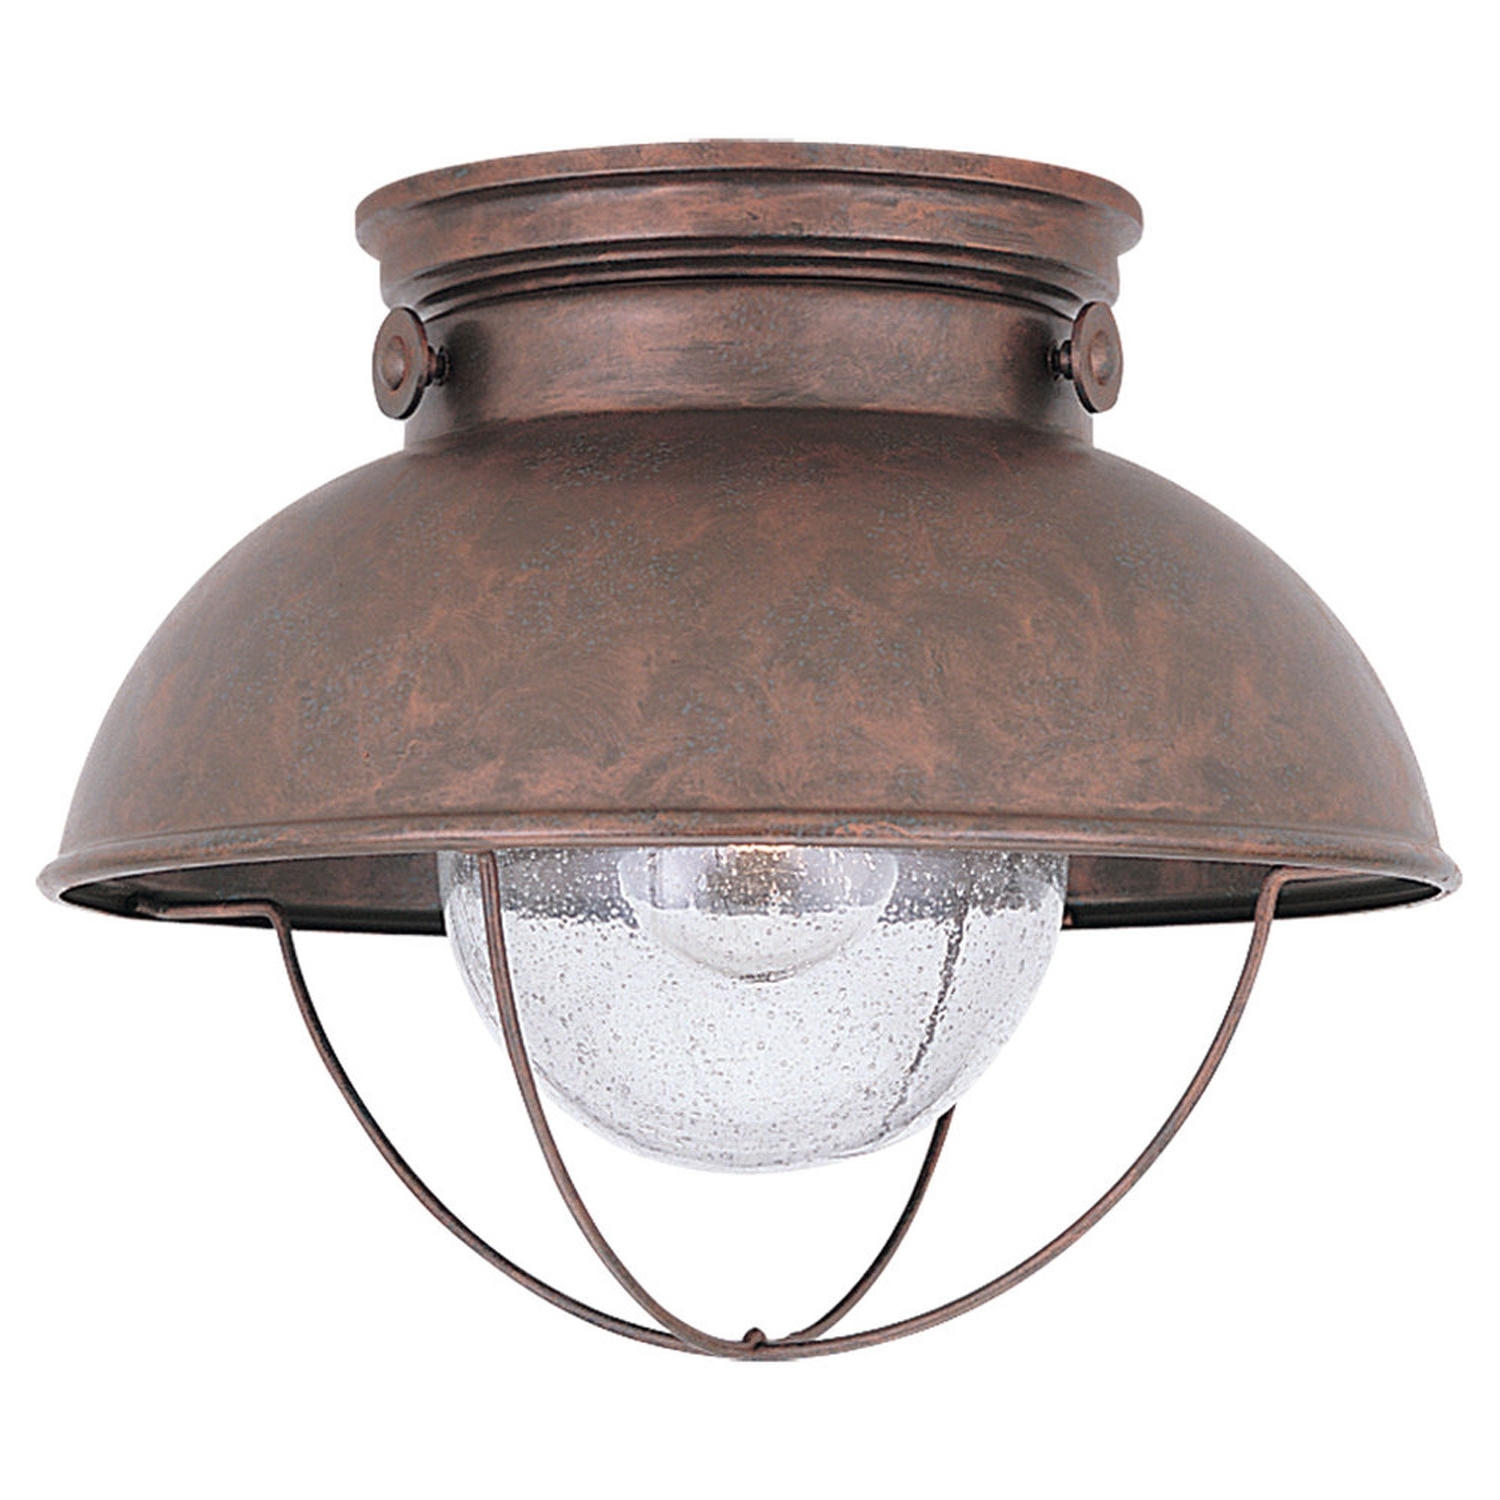 Outdoor Lighting On Sale (View 15 of 20)